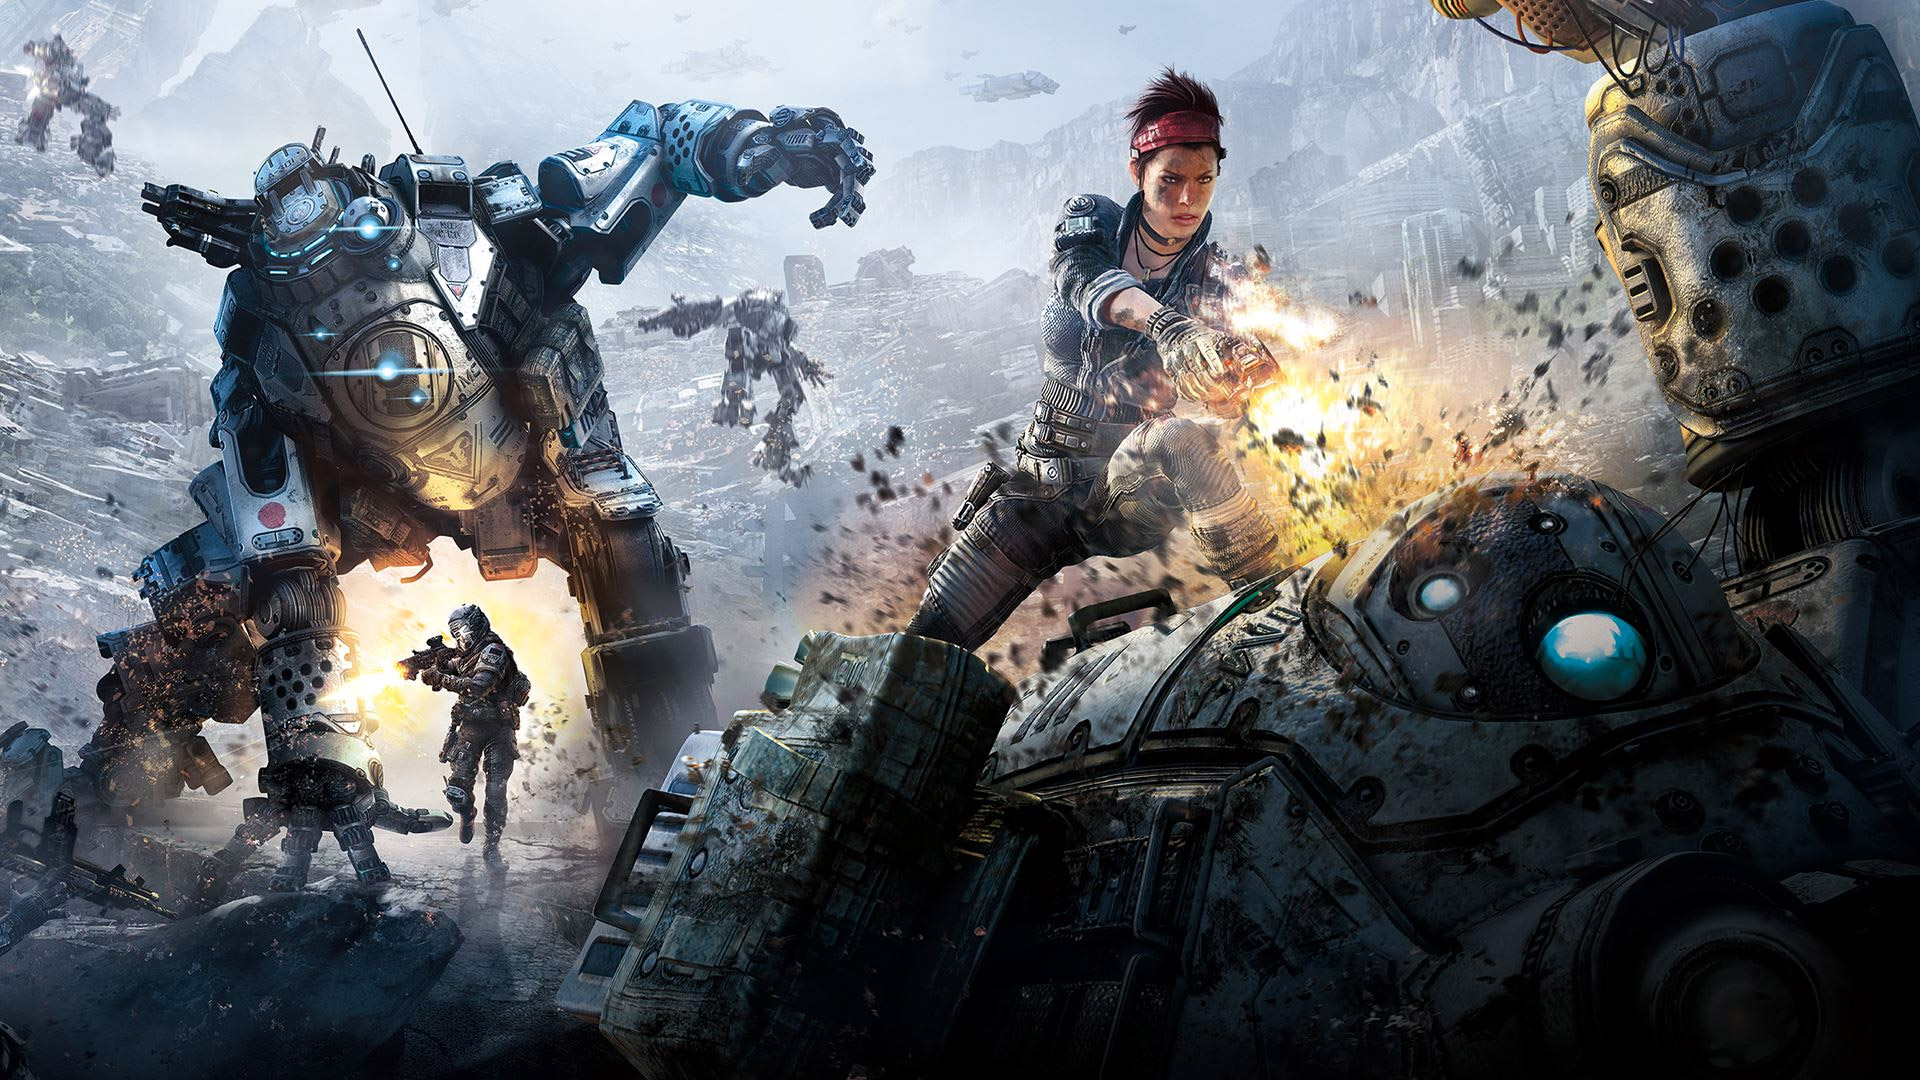 Titanfall's DLC is free right now on Xbox One, Xbox 360 and PC (update)